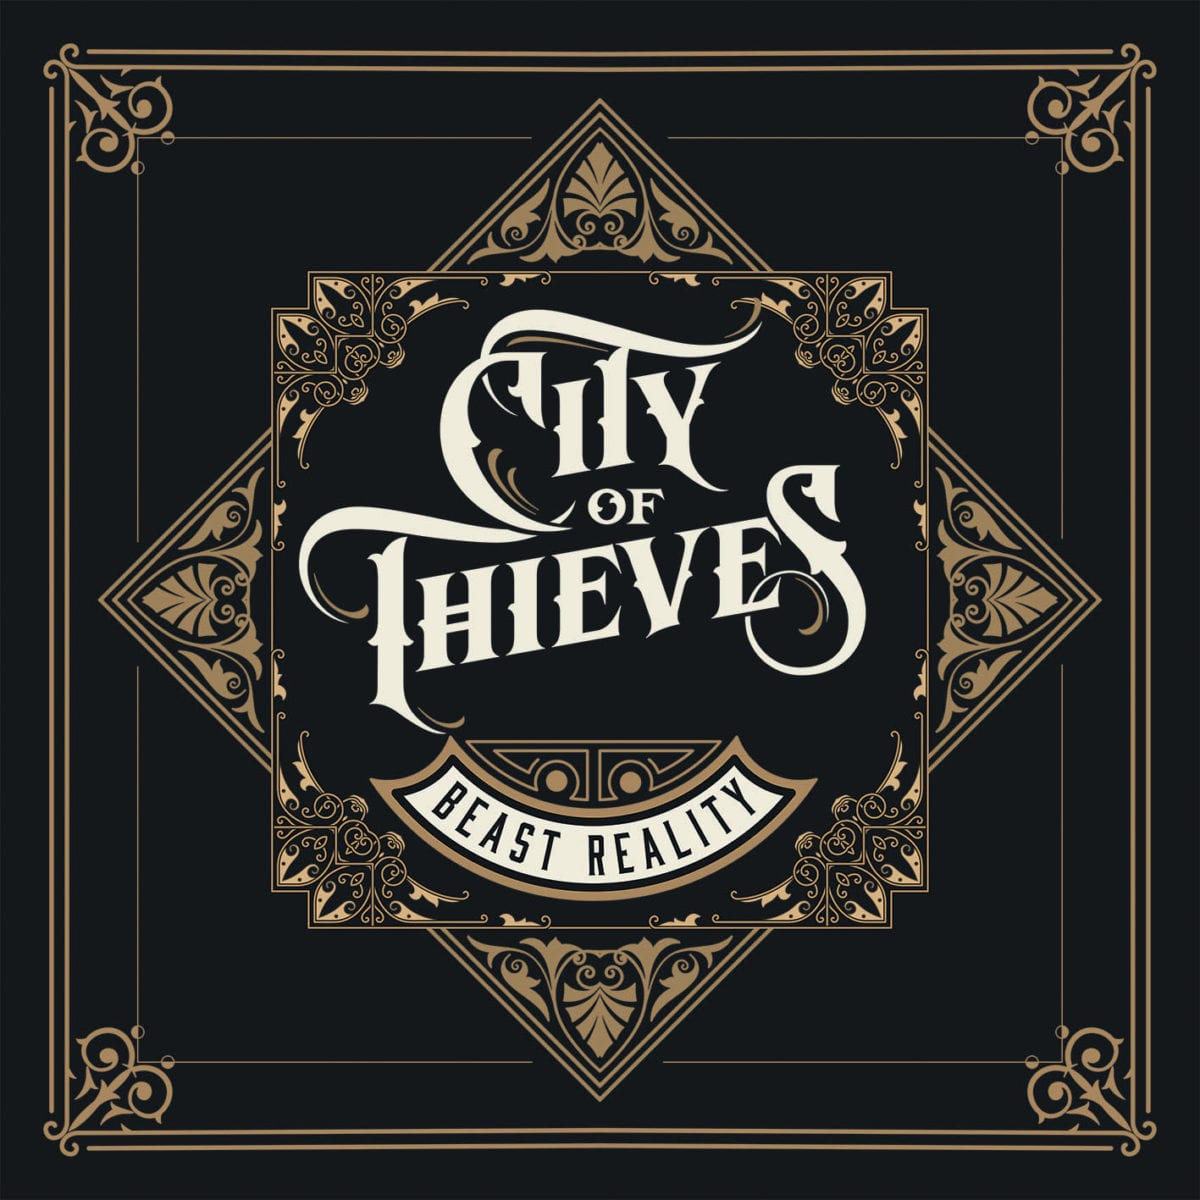 CITY OF THIEVES 'Beast Reality'